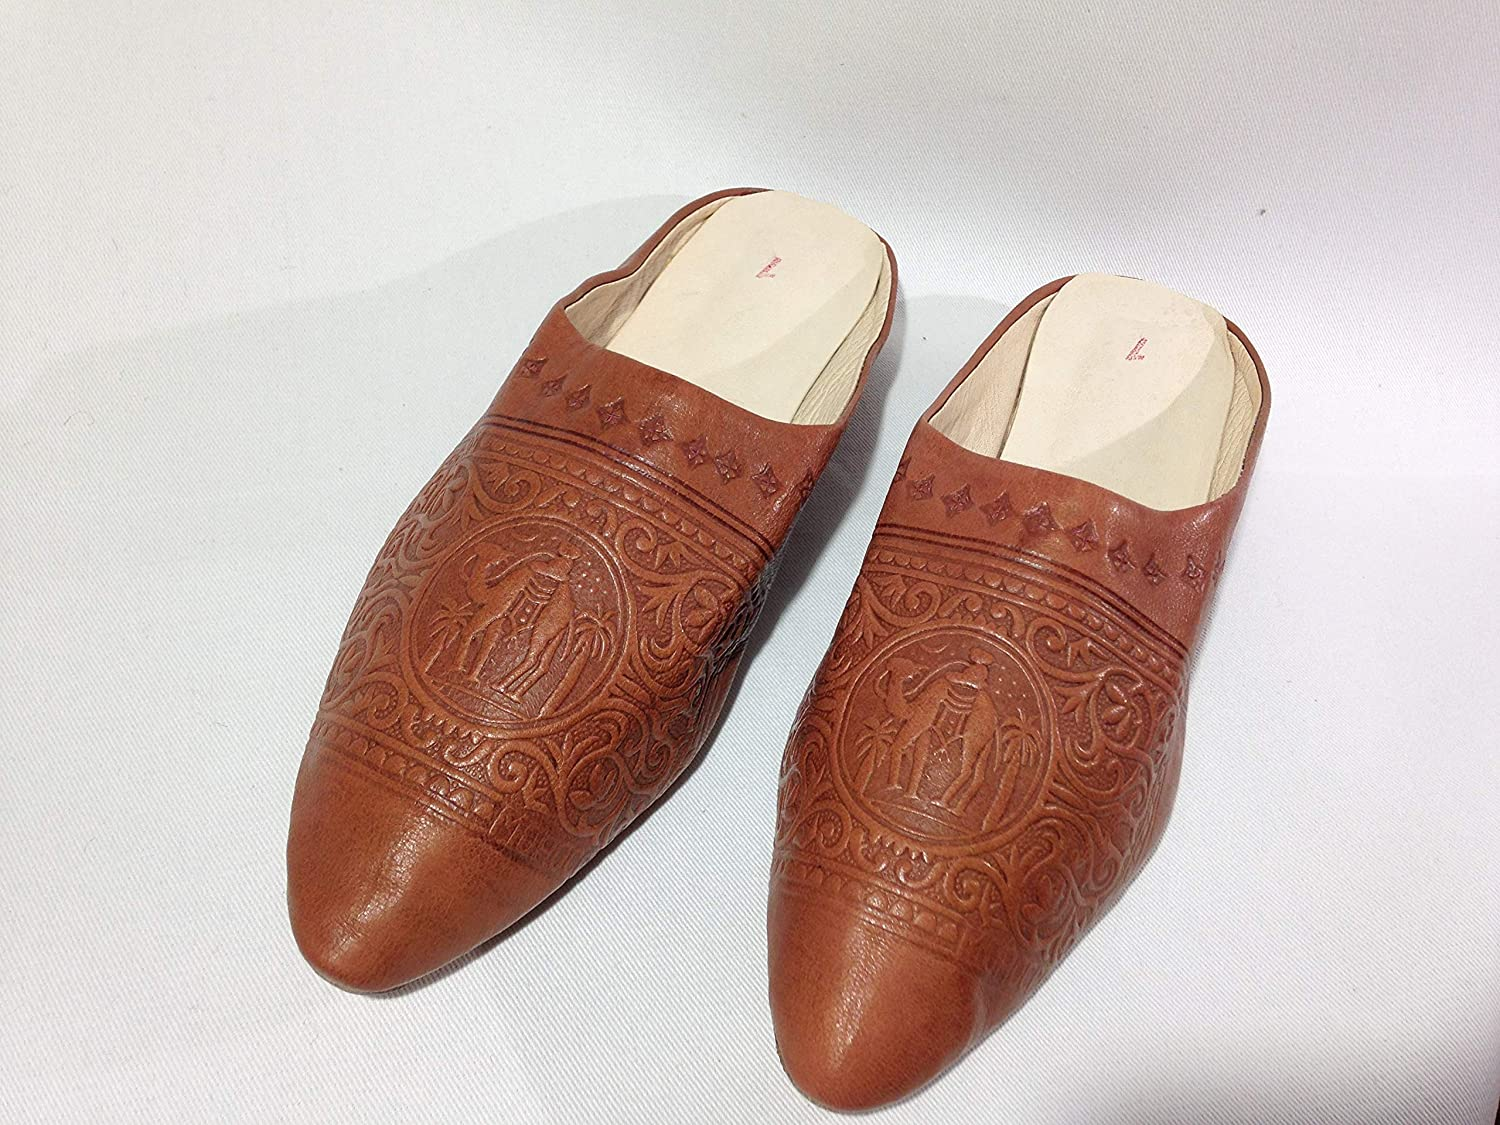 1e7df8a899658 Amazon.com: Leather slippers, women's house slippers withe heel ...